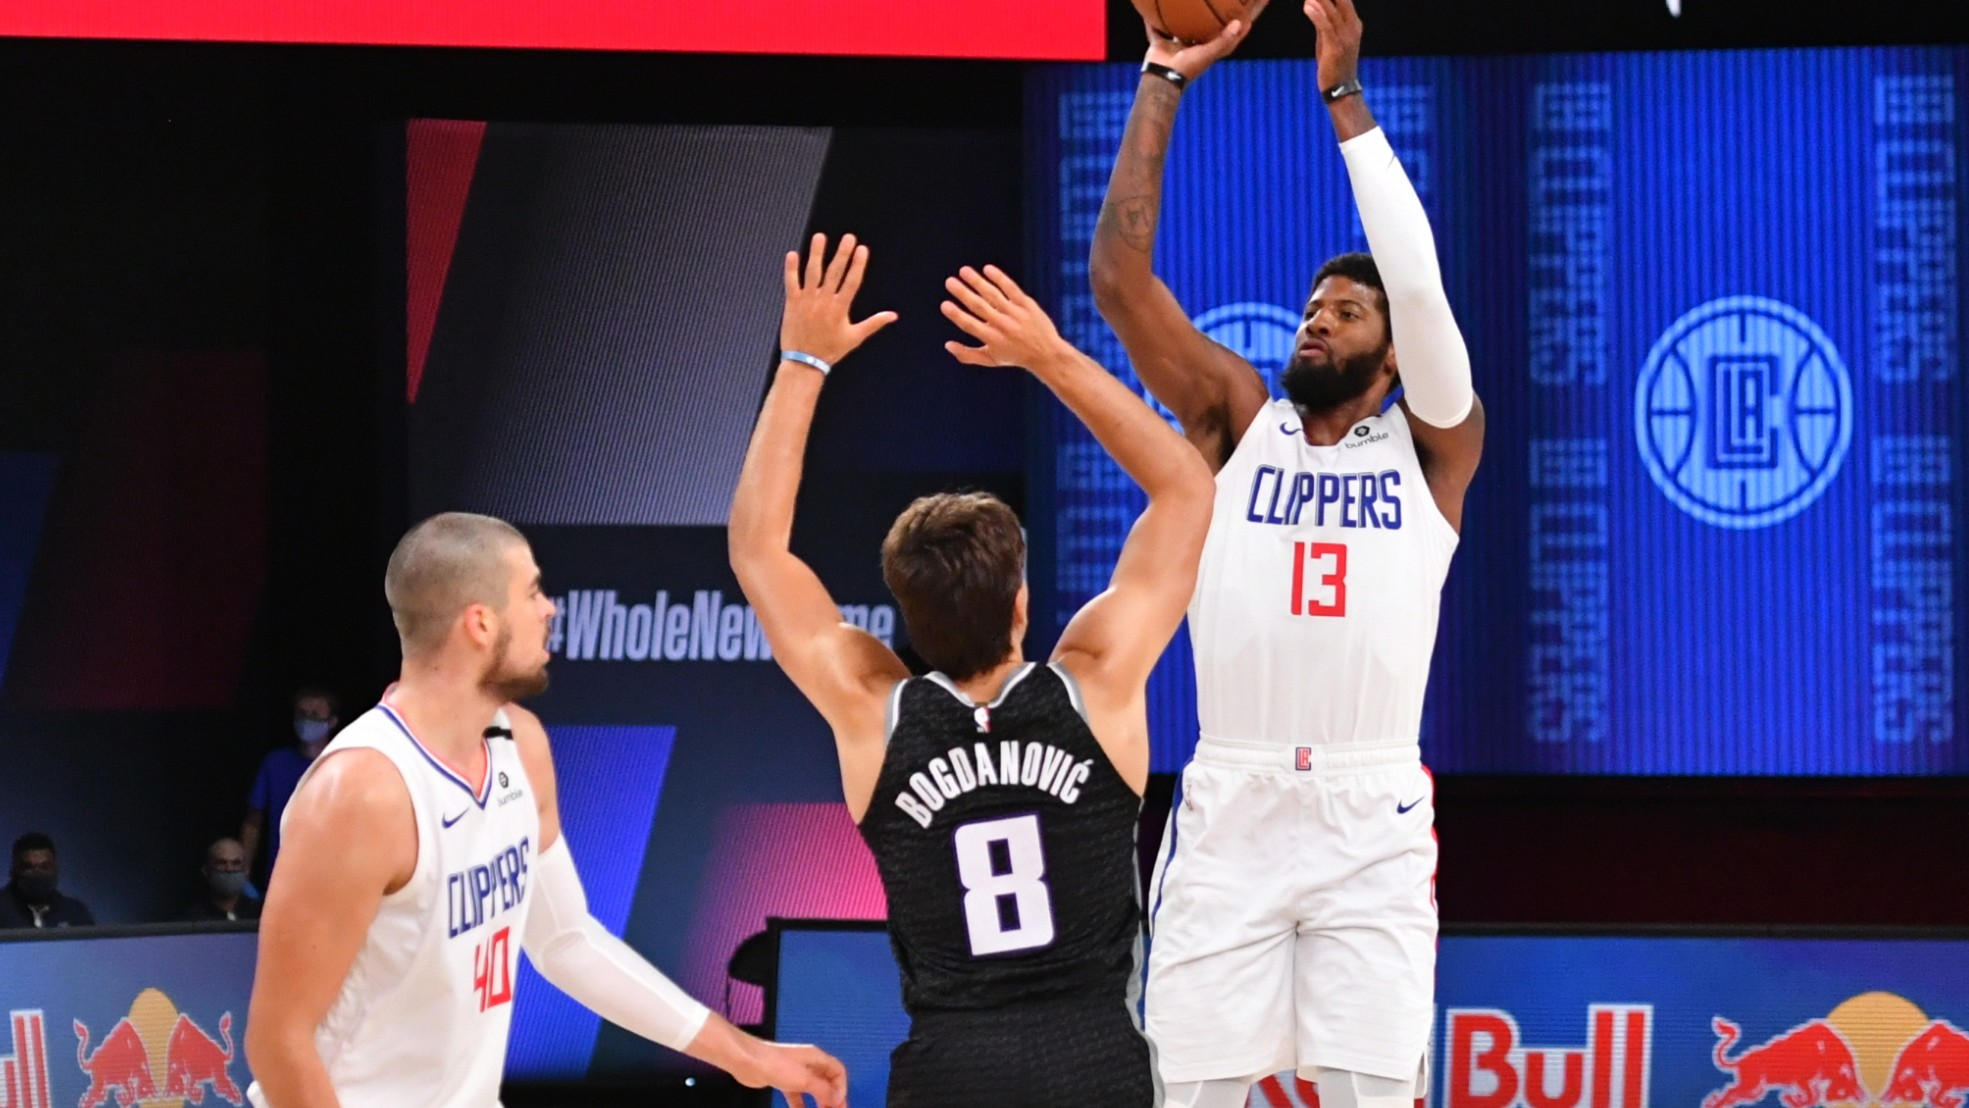 Kings @ Clippers